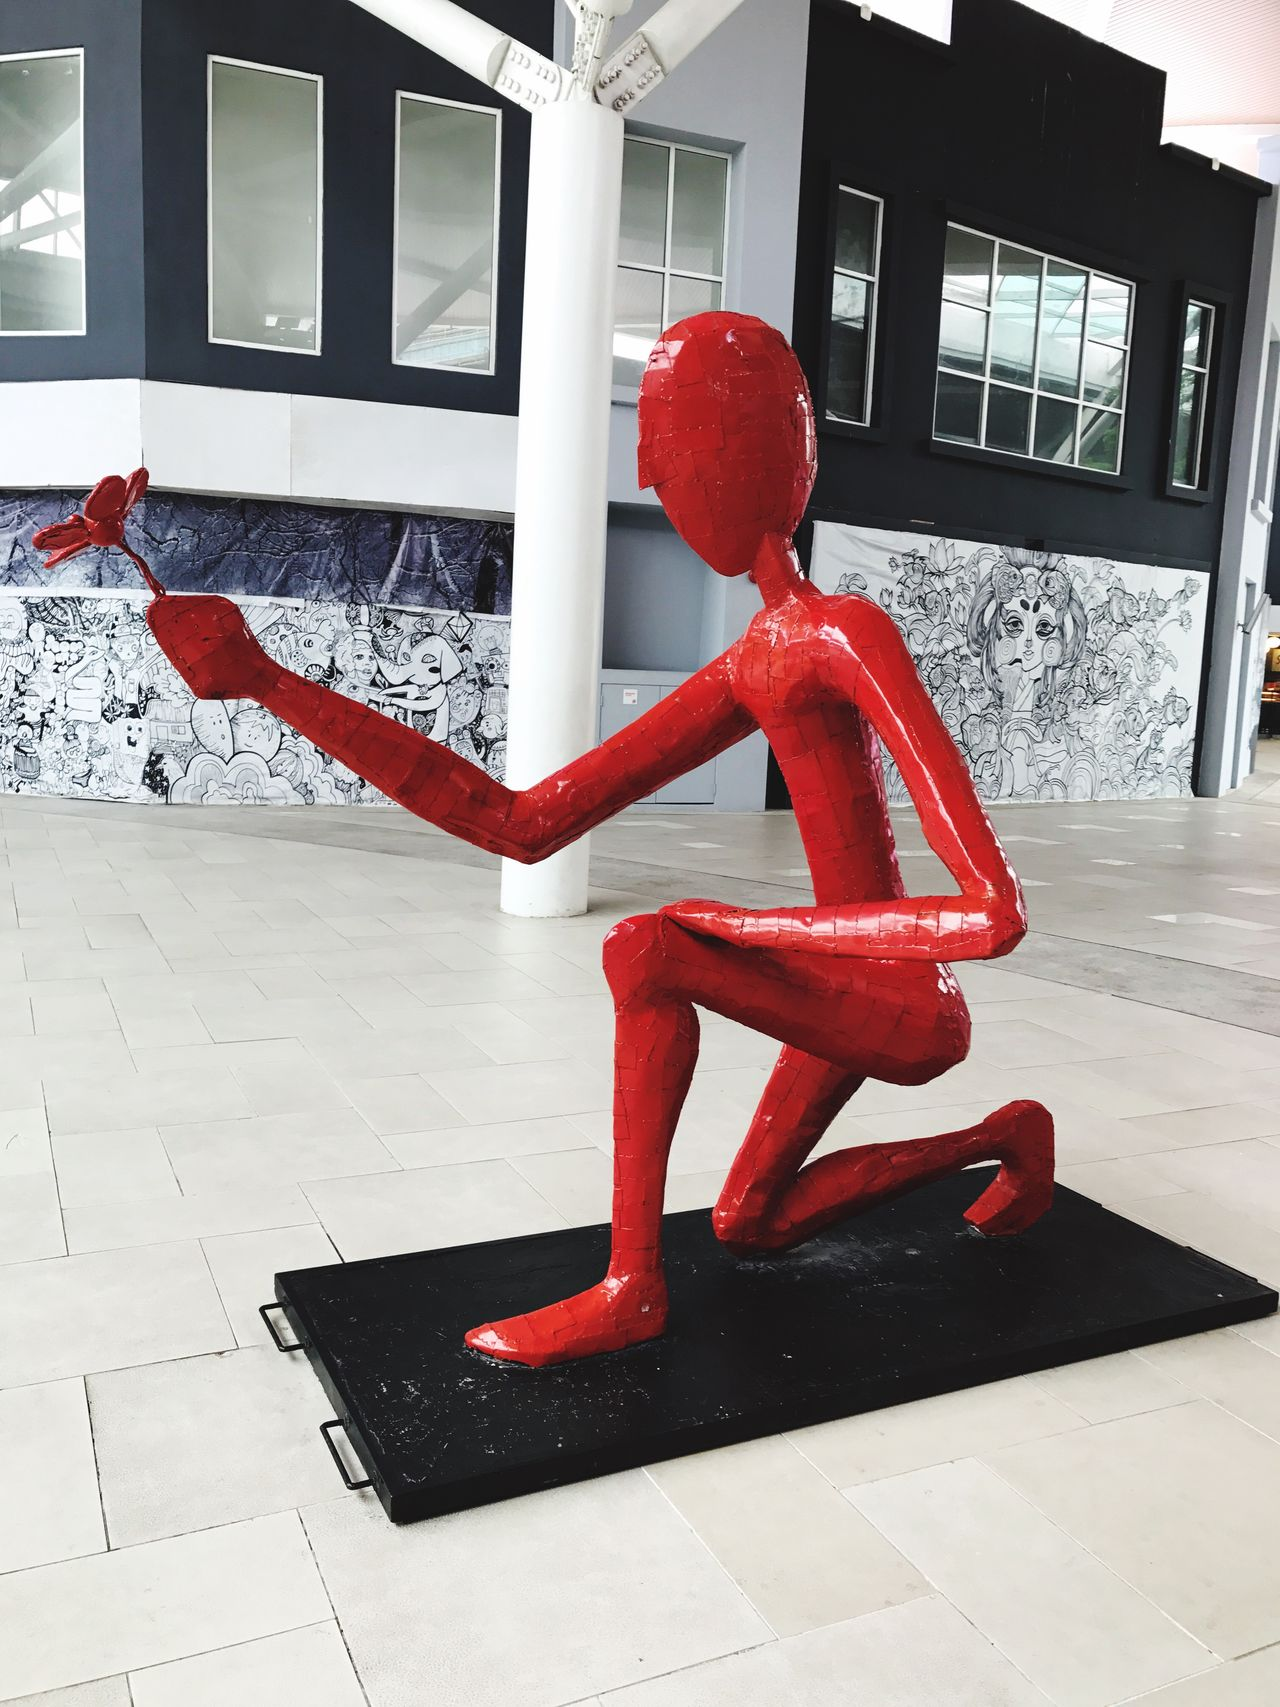 Red Day No People Architecture Outdoors Art And Craft Artistic Art, Drawing, Creativity ArtWork Statue